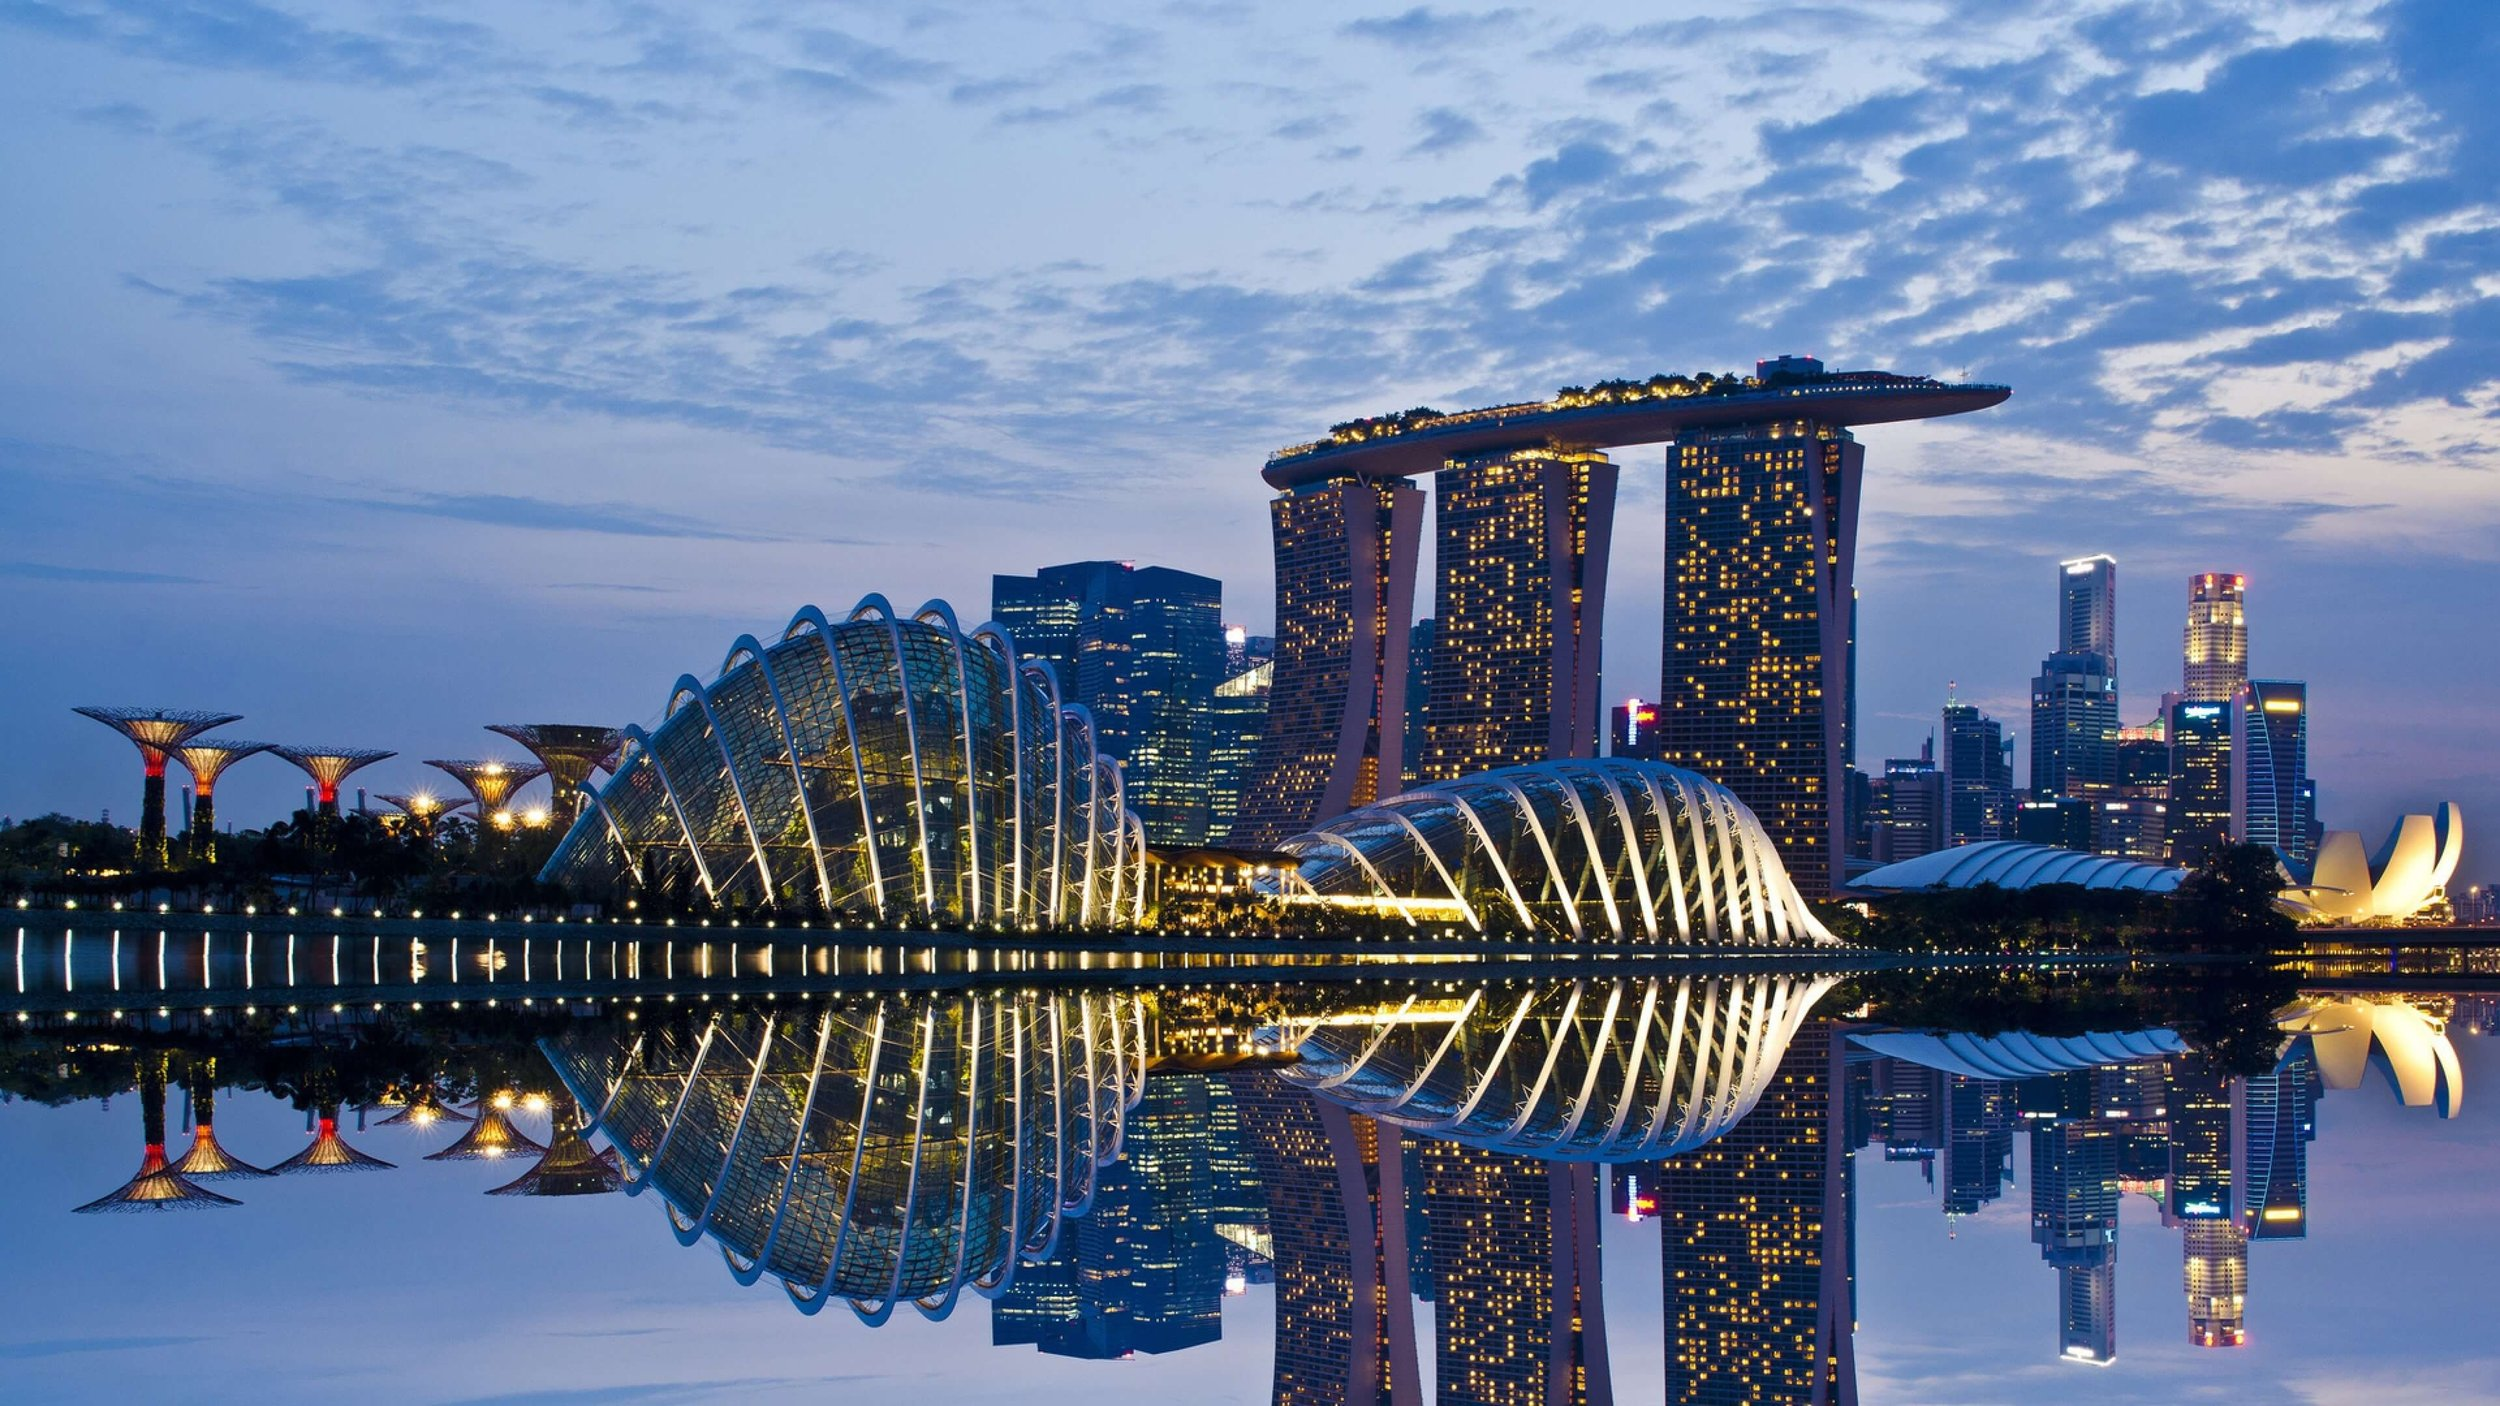 sights-and-scenes-of-beautiful-singapore-hd-wallpaper-7-3840x2160.jpg